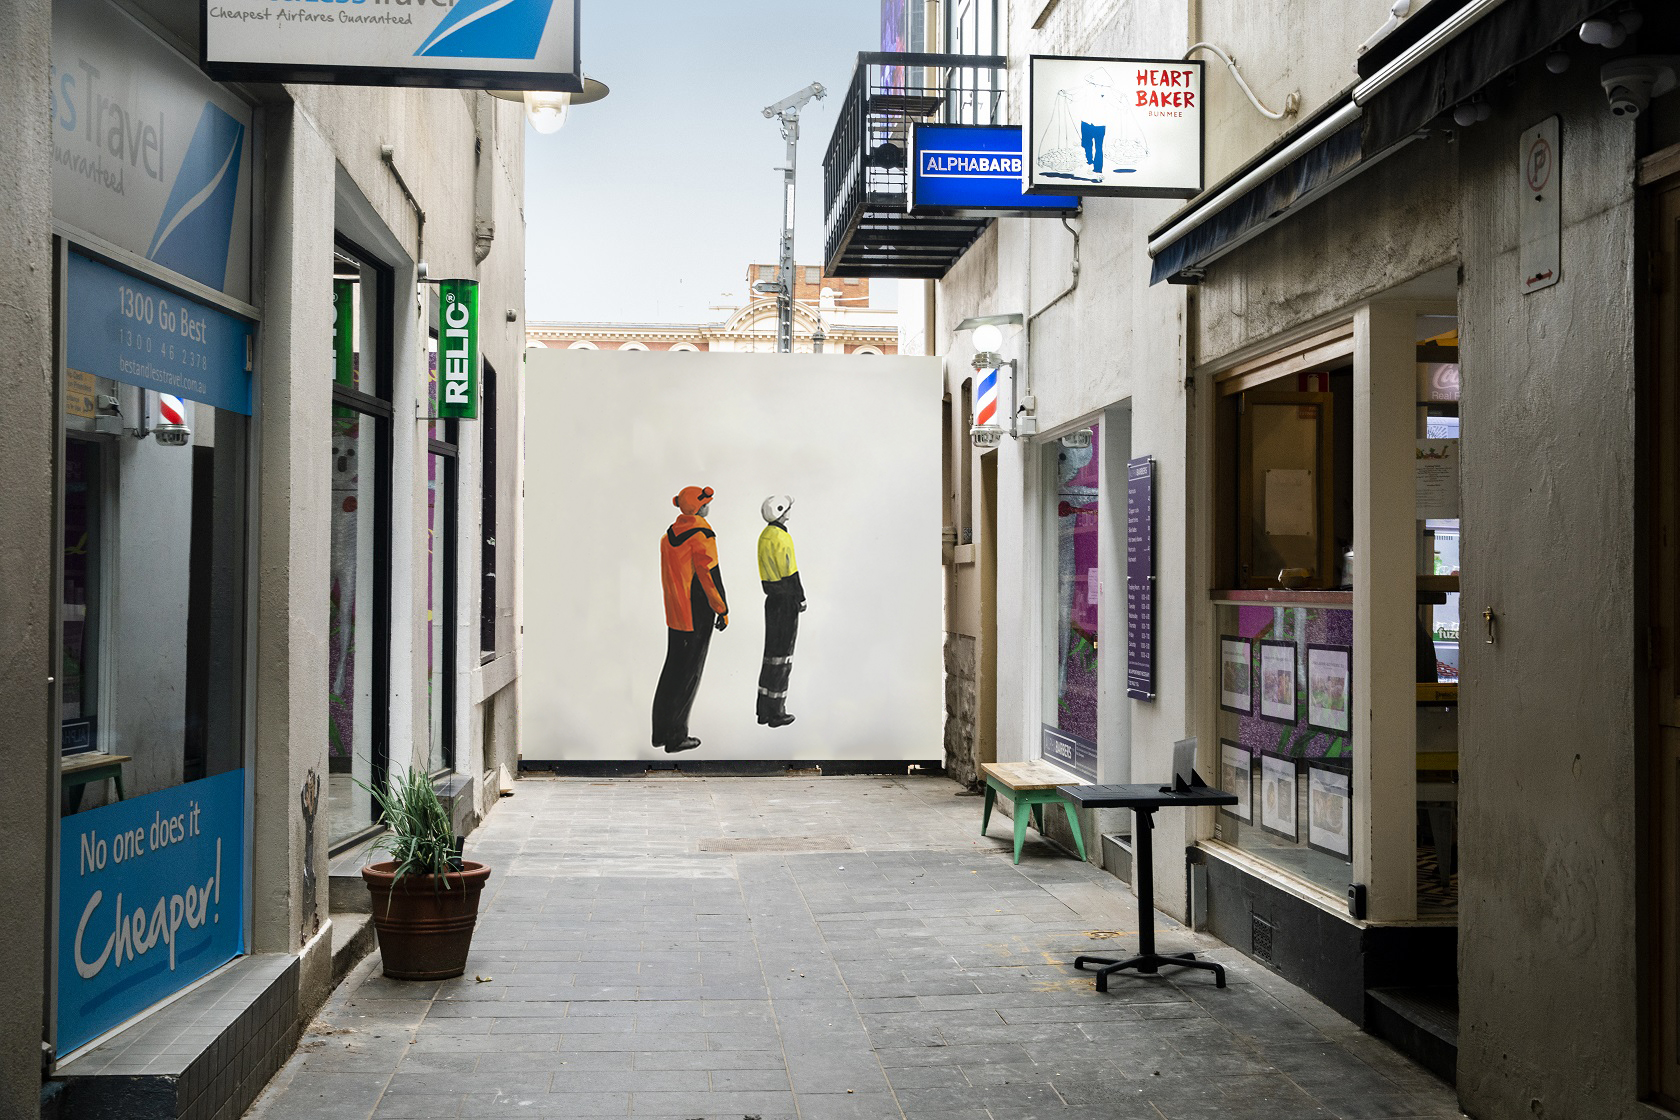 An artwork of two people standing looking upwards, on a temporary wall at the end of a laneway